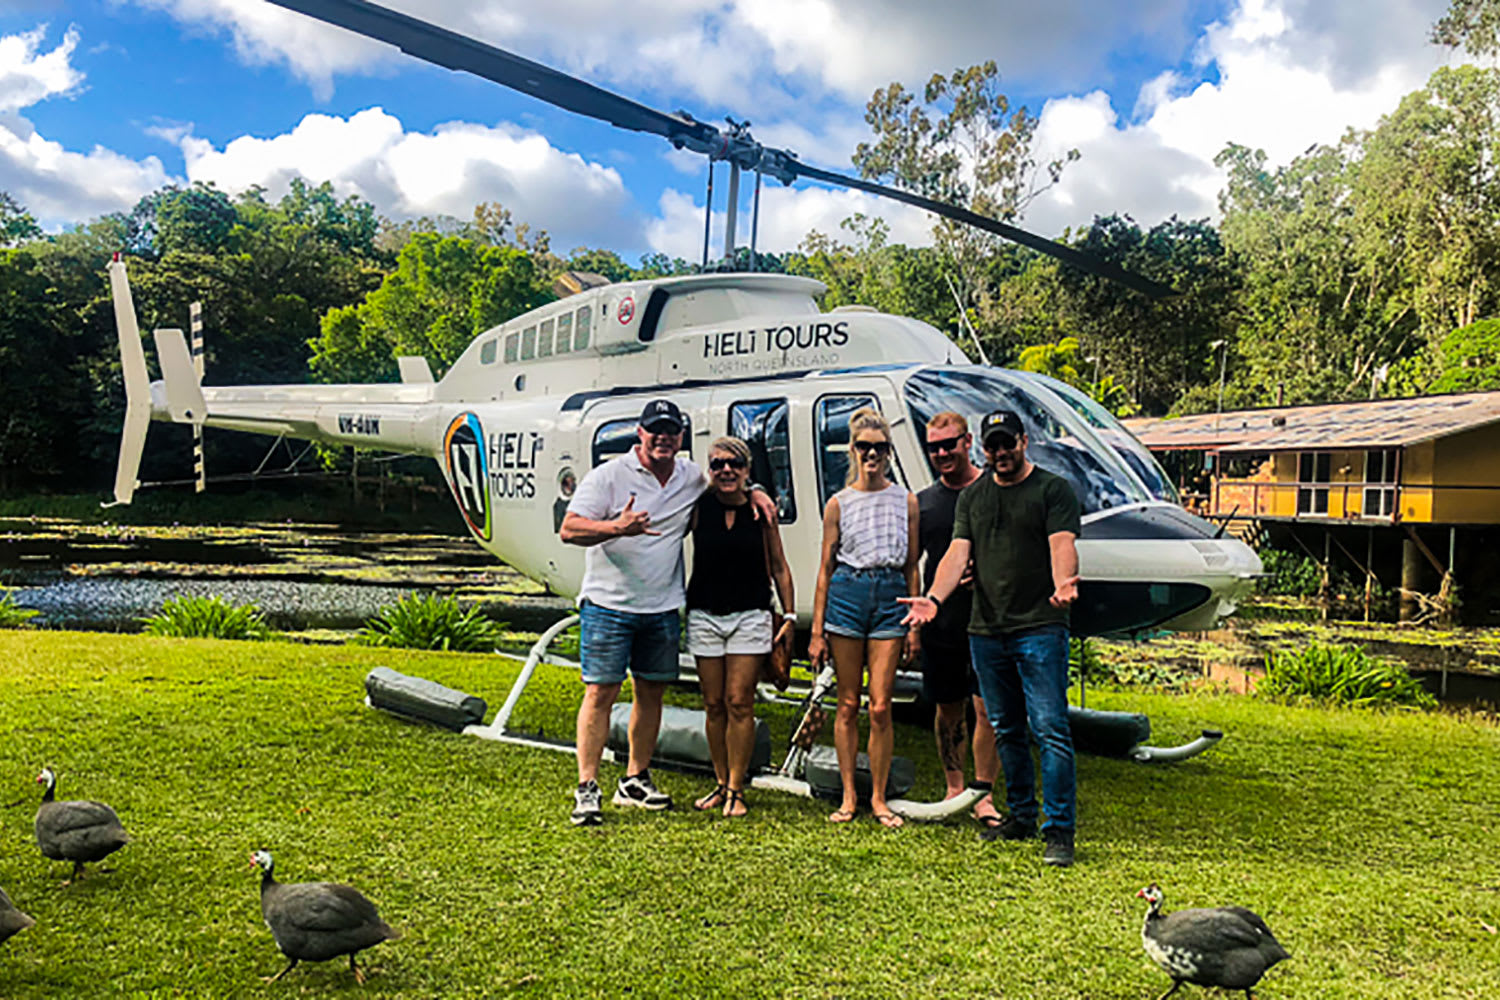 Helicopter Pub Tour in the Atherton Tablelands - 5 Hours